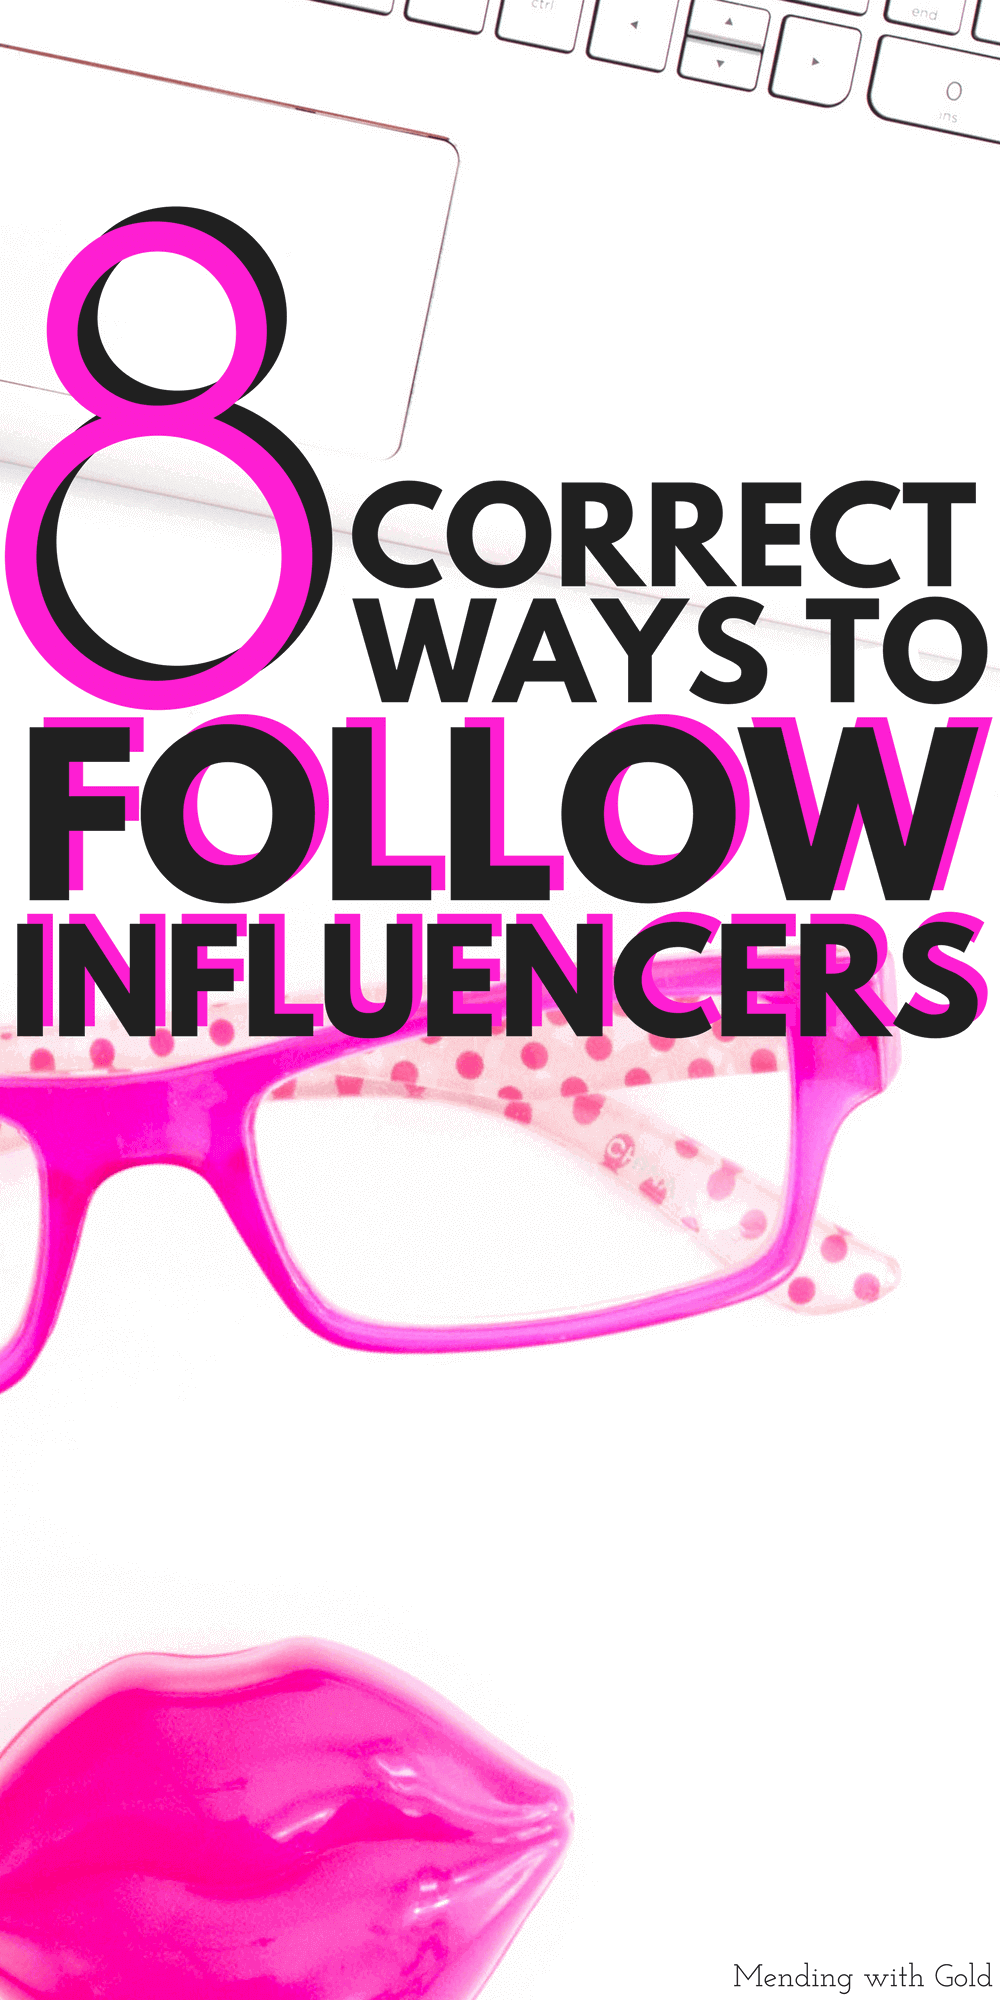 Have you been stalking bloggers? I mean of course you have, but do you know the right way to follow influencers in you market. I lay down 8 points to make the best use of the time spent reading blogs and online content. Click and learn some very handy practical tips.